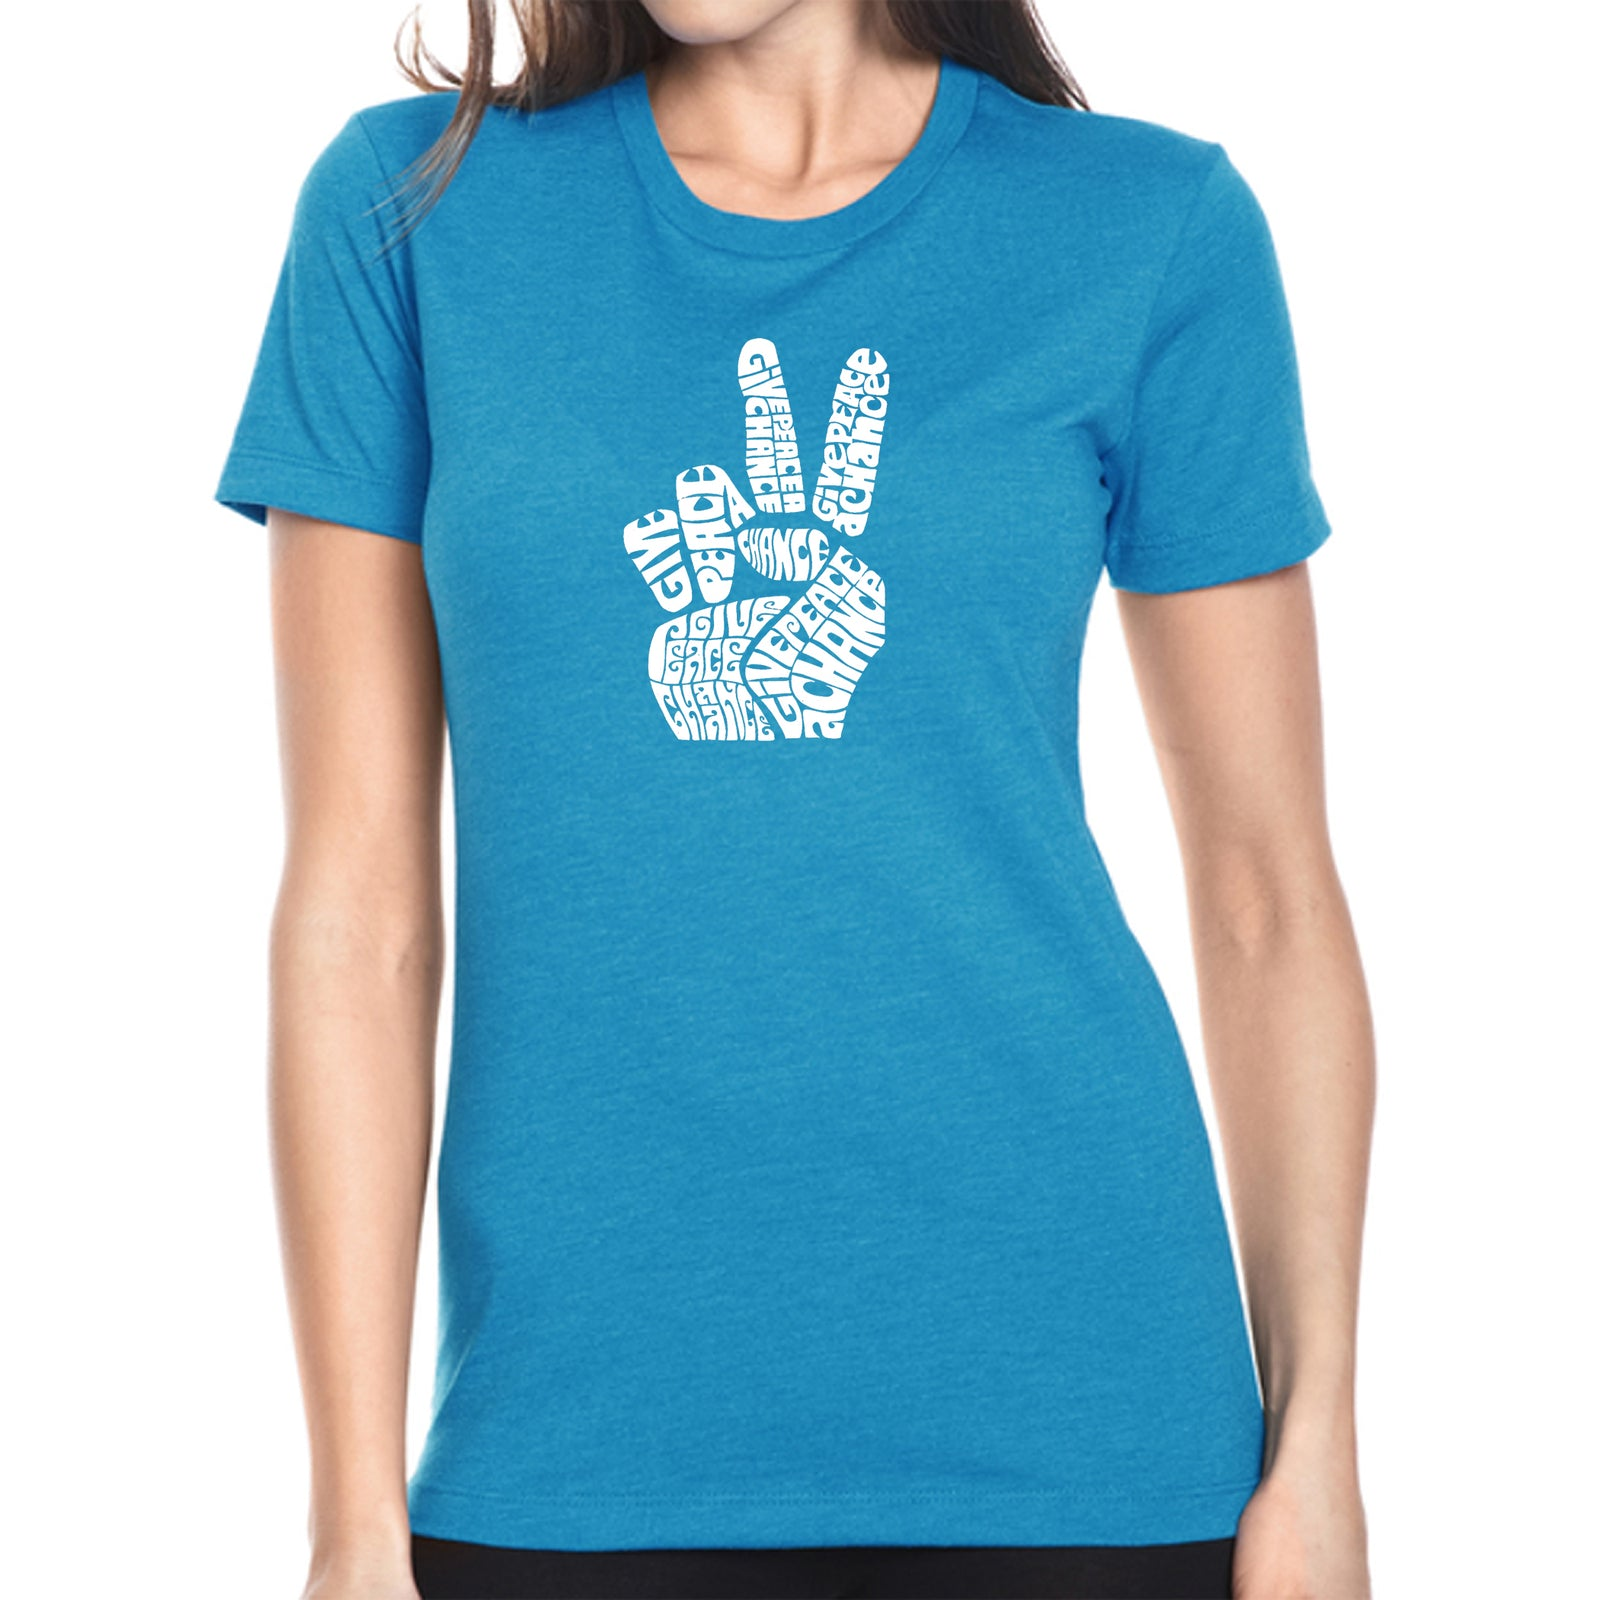 Women's Premium Blend Word Art T-shirt - PEACE FINGERS